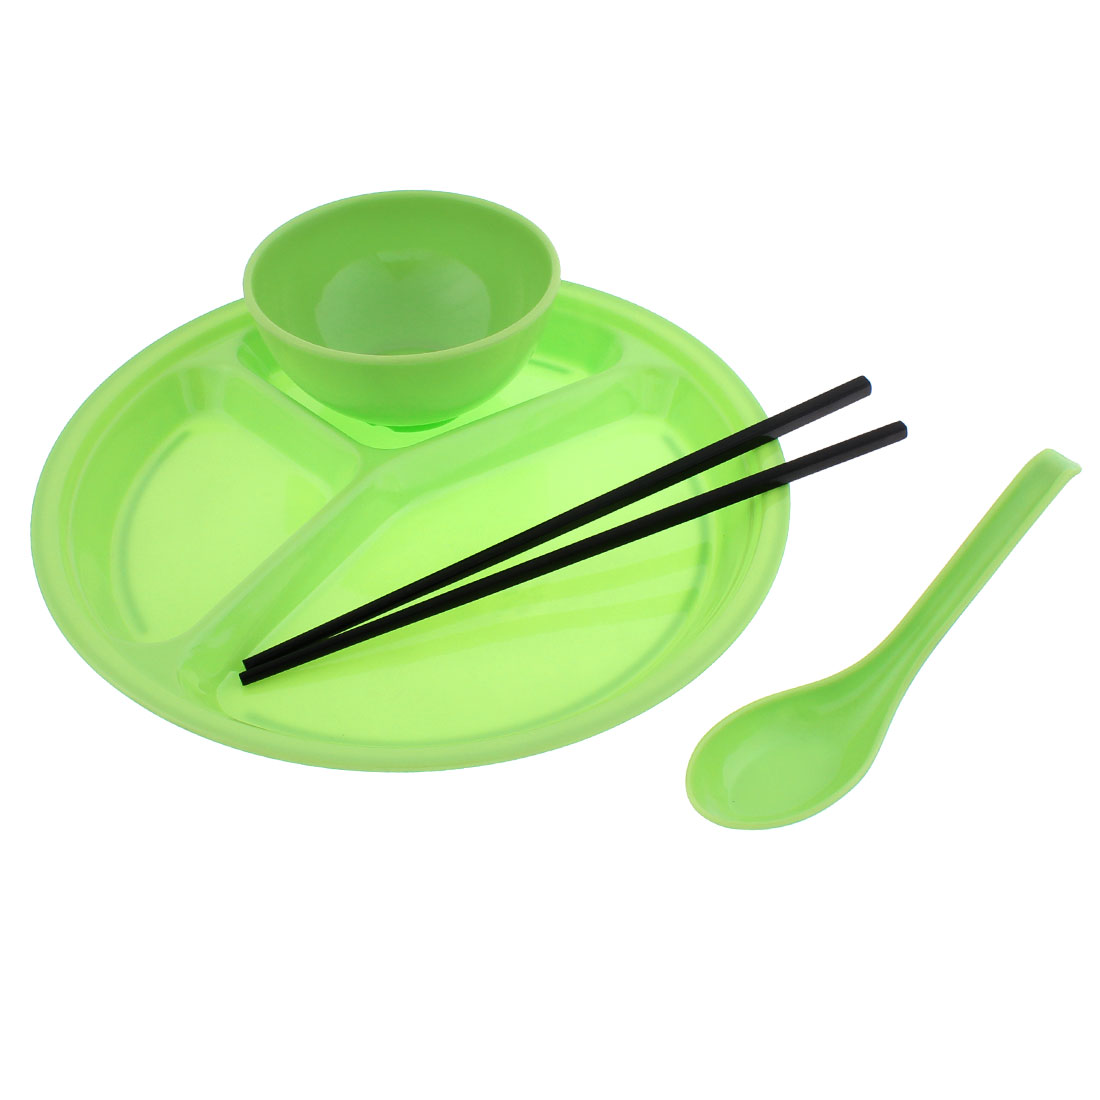 Restaurant School Plastic Bowl Chopsticks Spoon 3 Parts Divided Plate Green 4 in 1